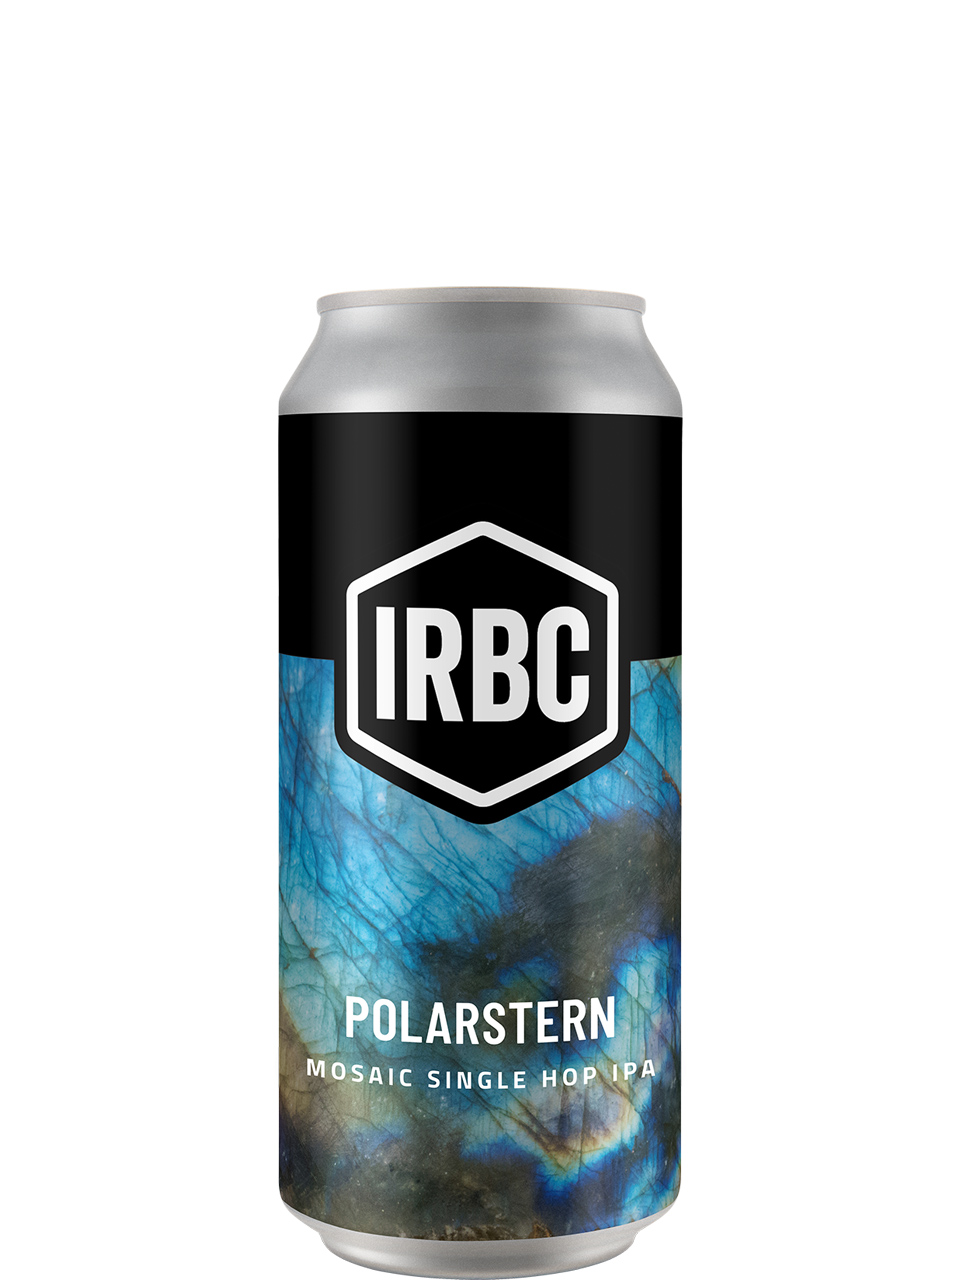 Iron Rock Polarstern Mosaic IPA 473ml Can